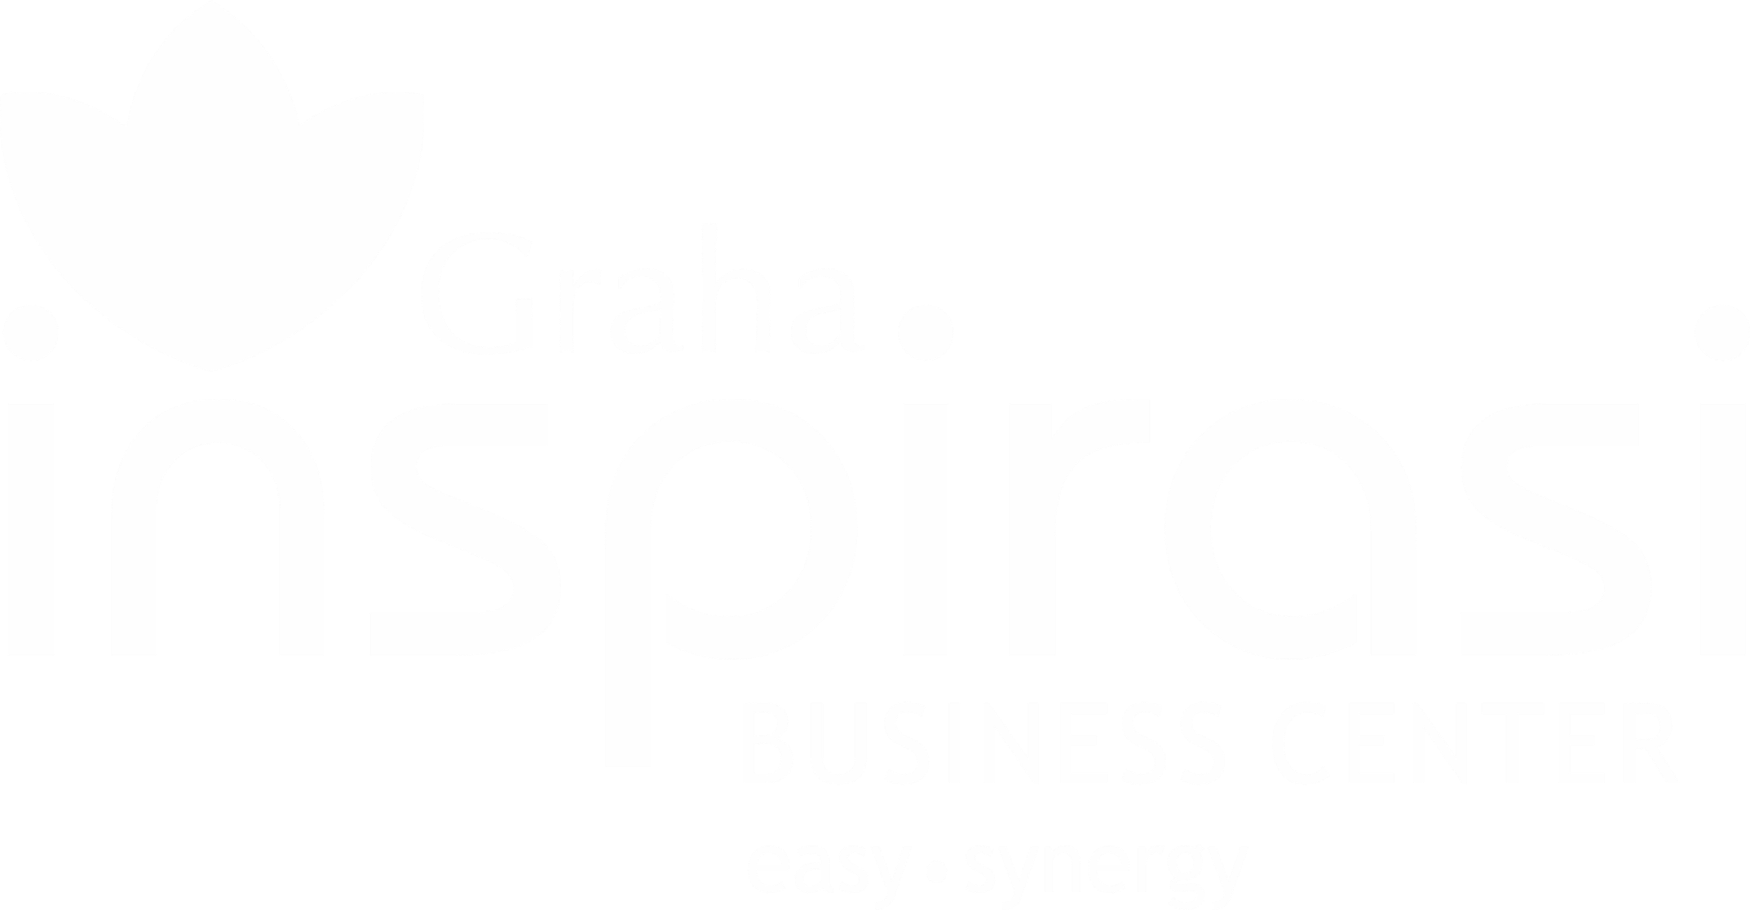 GI space by Graha Inspirasi - Office Made Easy - Space and Services Office Provider